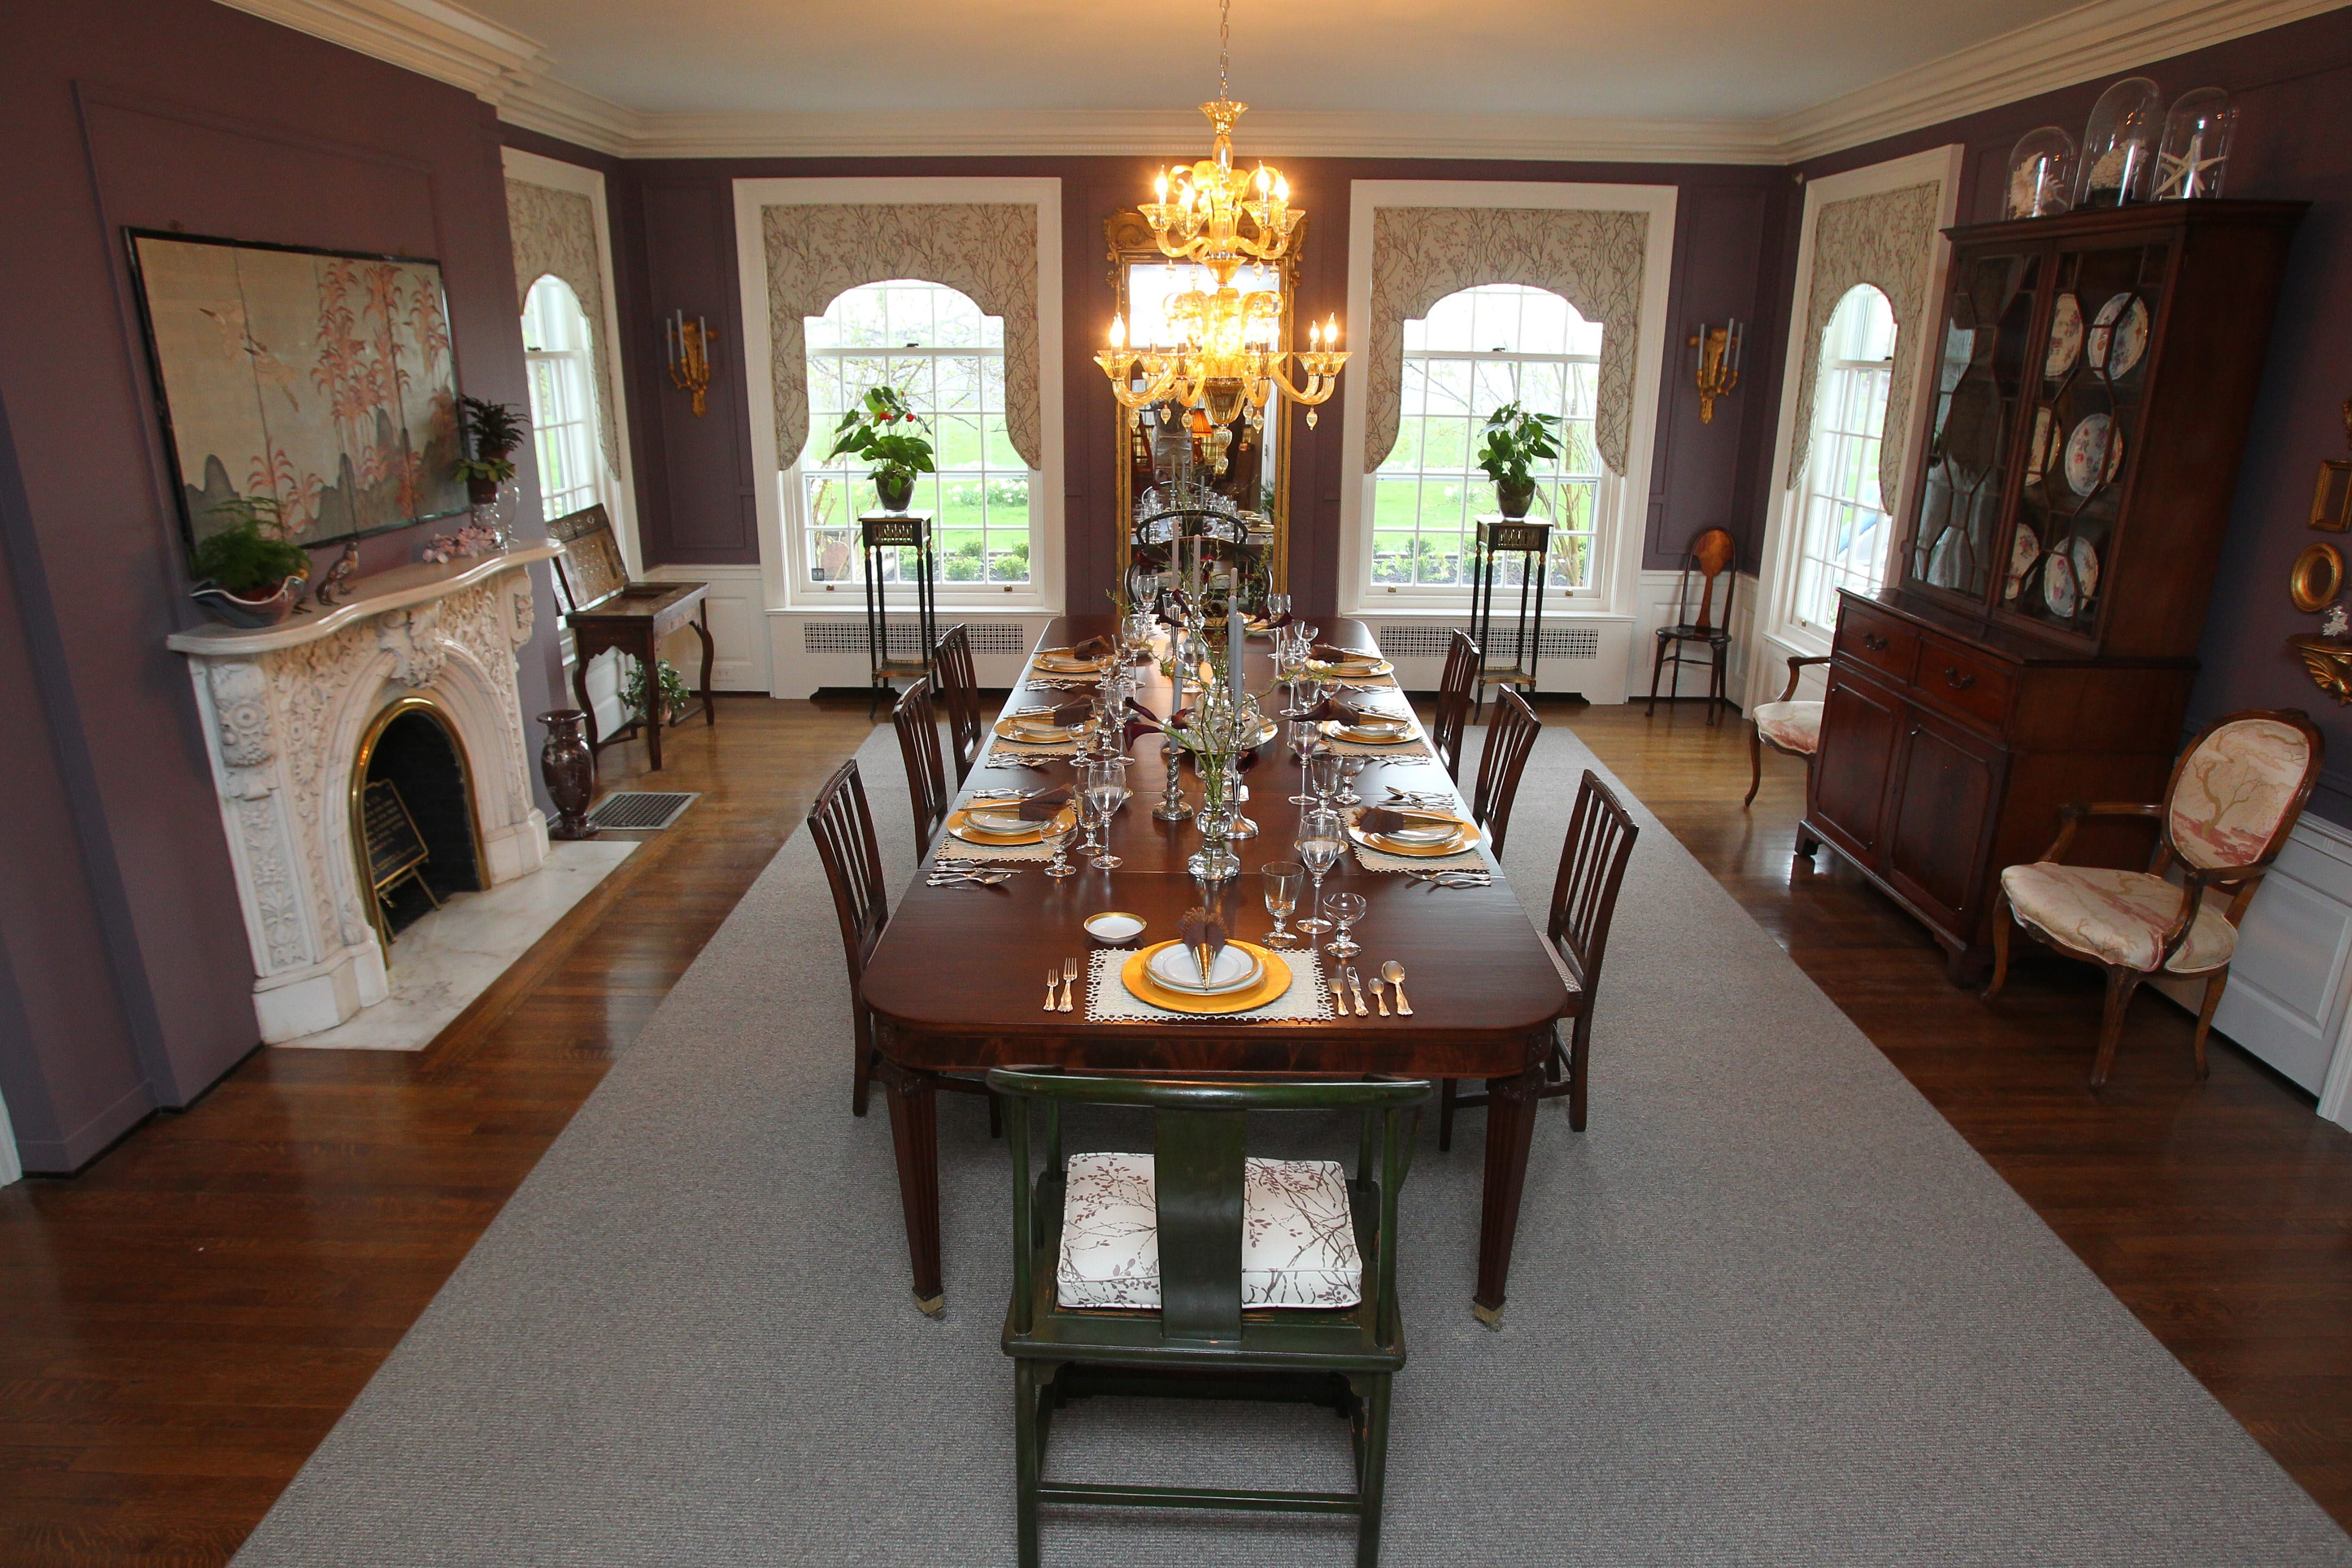 The 2013 Decorators' Show House, which launched this weekend at the Knox Summer Estate in Knox Farm State Park in East Aurora, provides a fantastic opportunity for local businesses to shine.